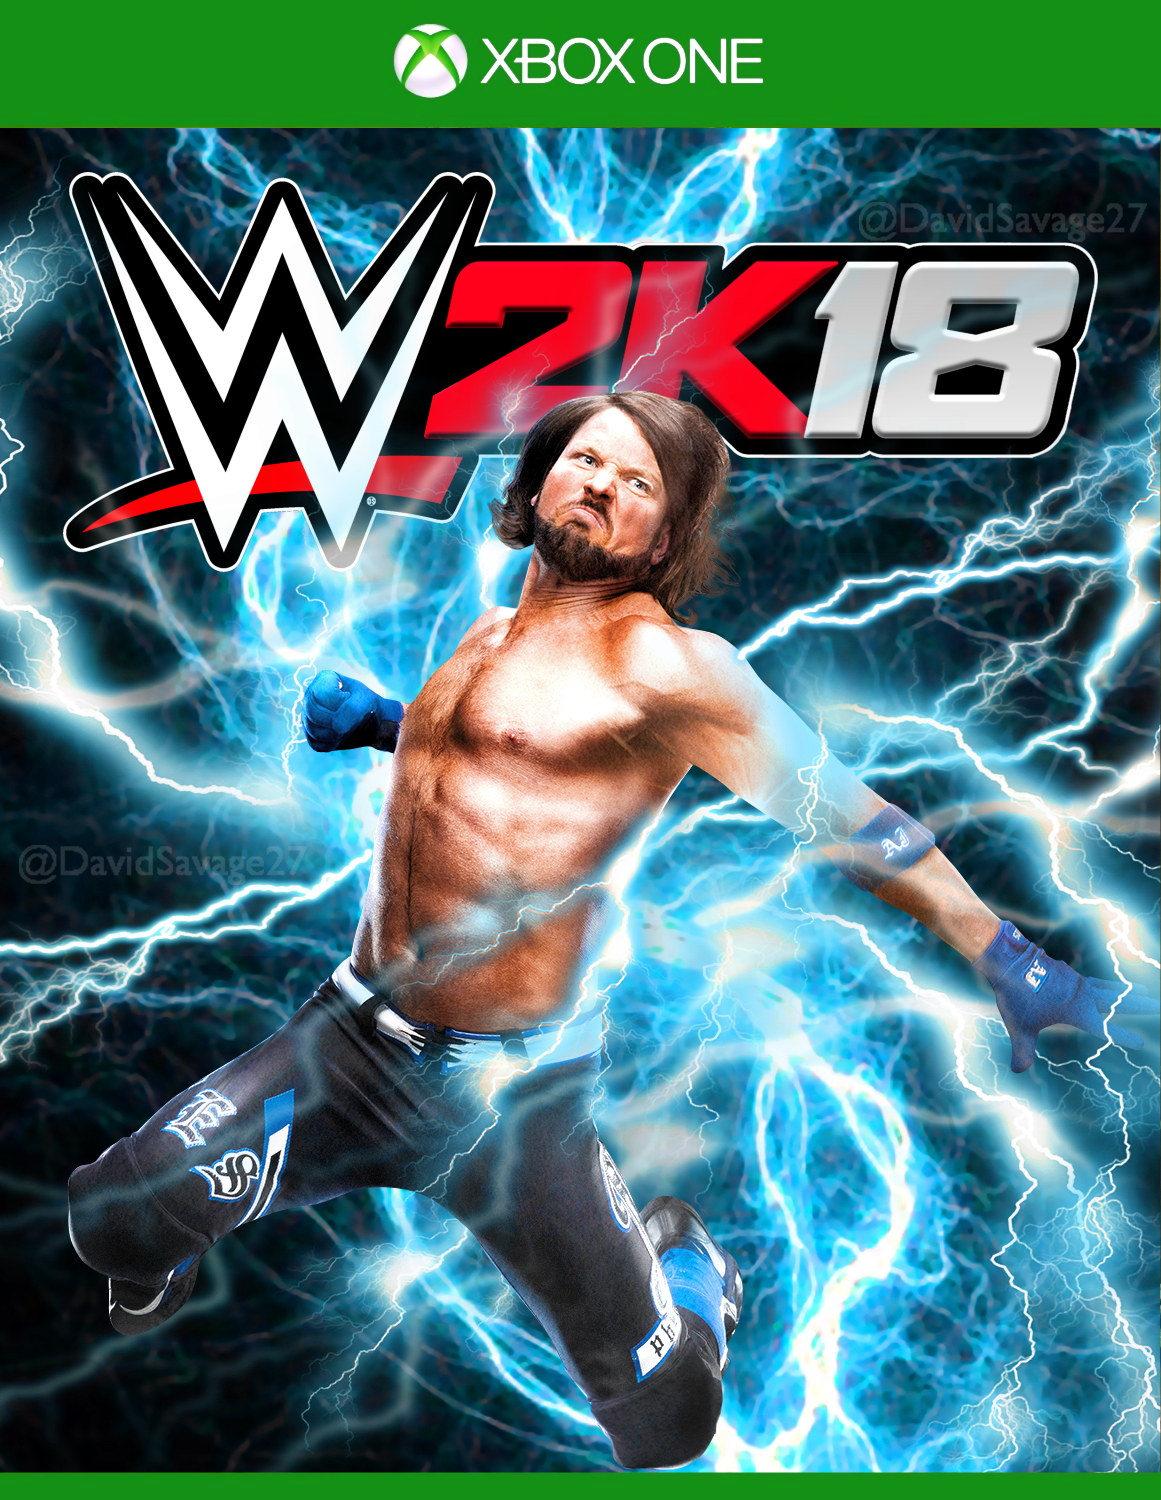 Book Cover Background Xbox One ~ Wwe k cover xbox one by ultimate savage on deviantart